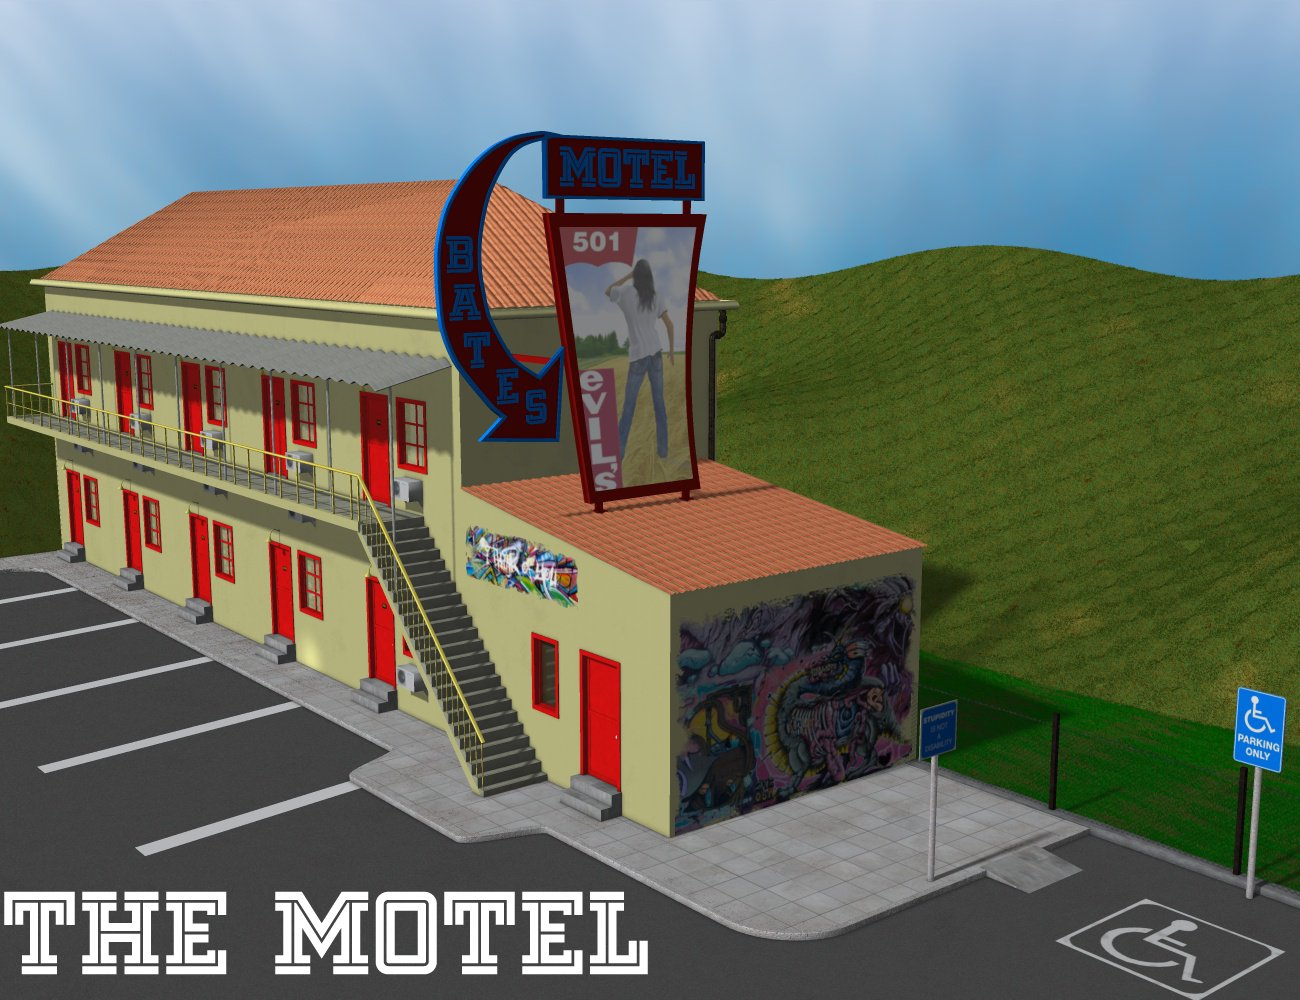 The Motel by greenpots